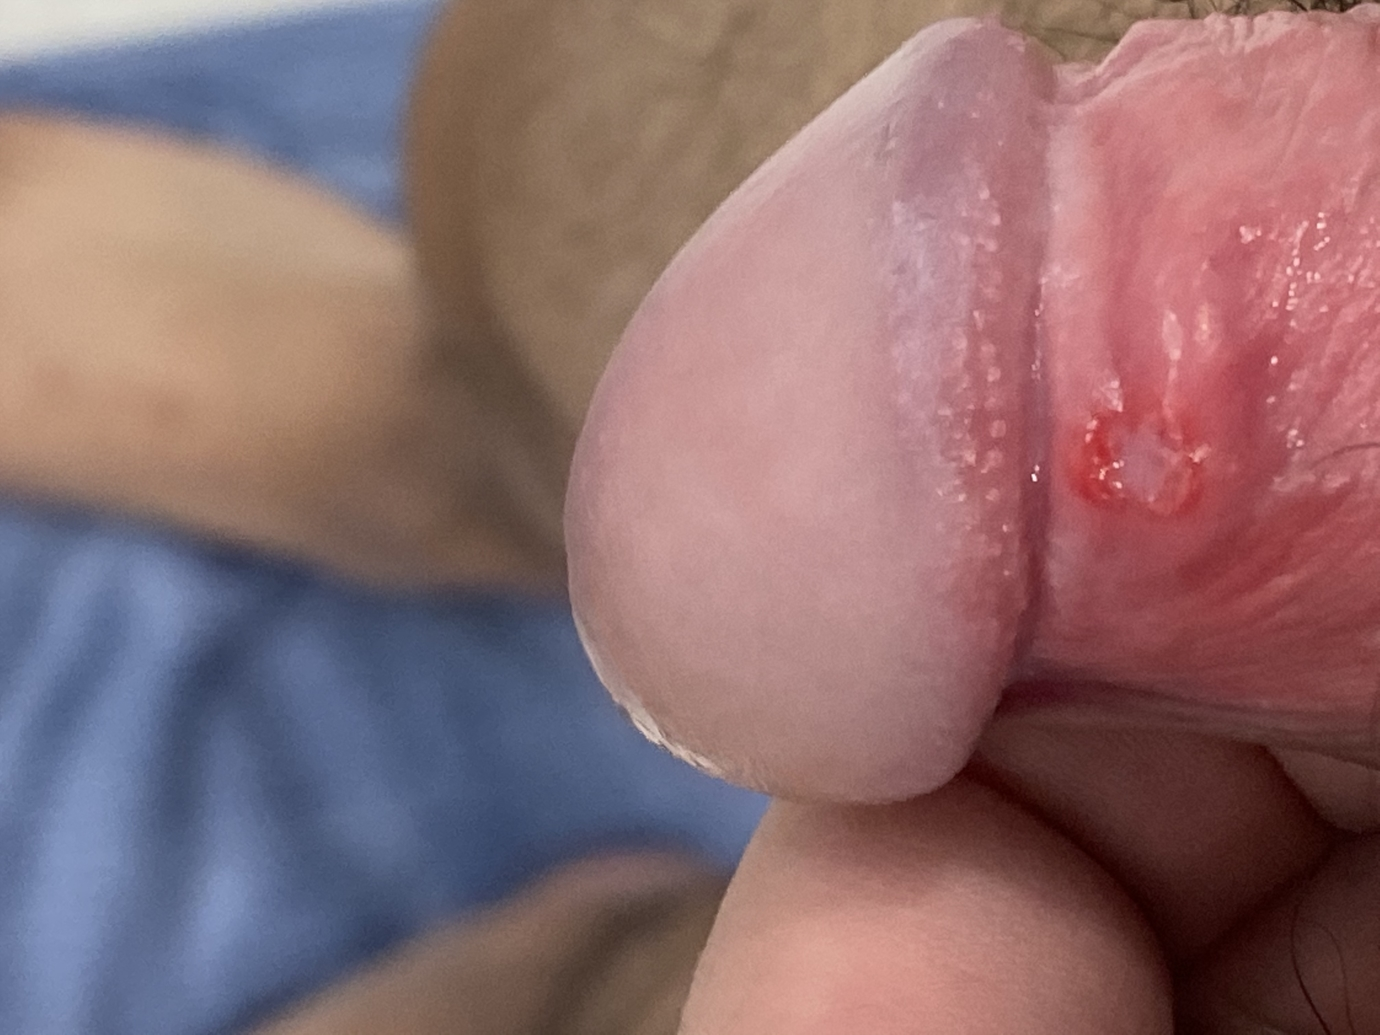 White pimples on penis shaft